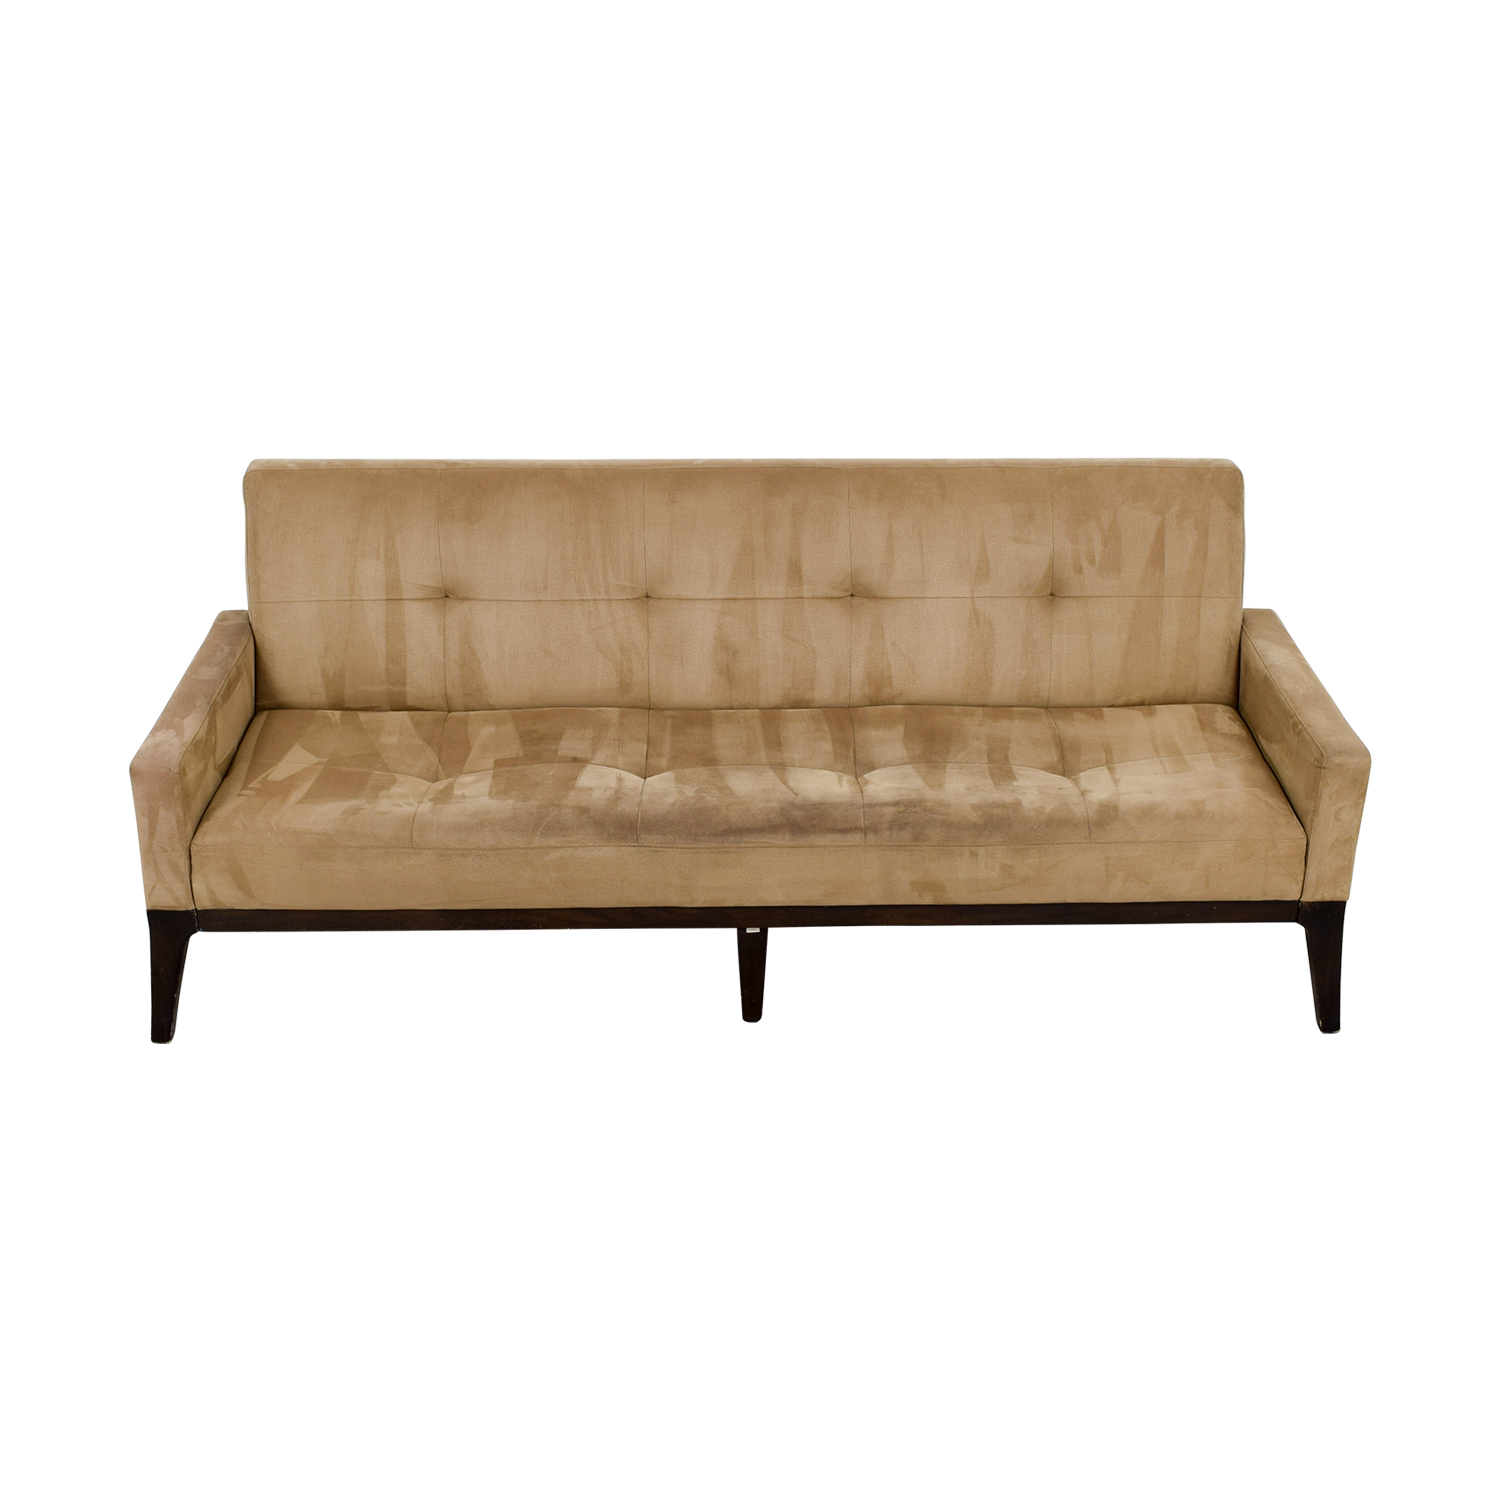 45% OFF West Elm West Elm Mid Century Tan Tufted Sofa Sofas